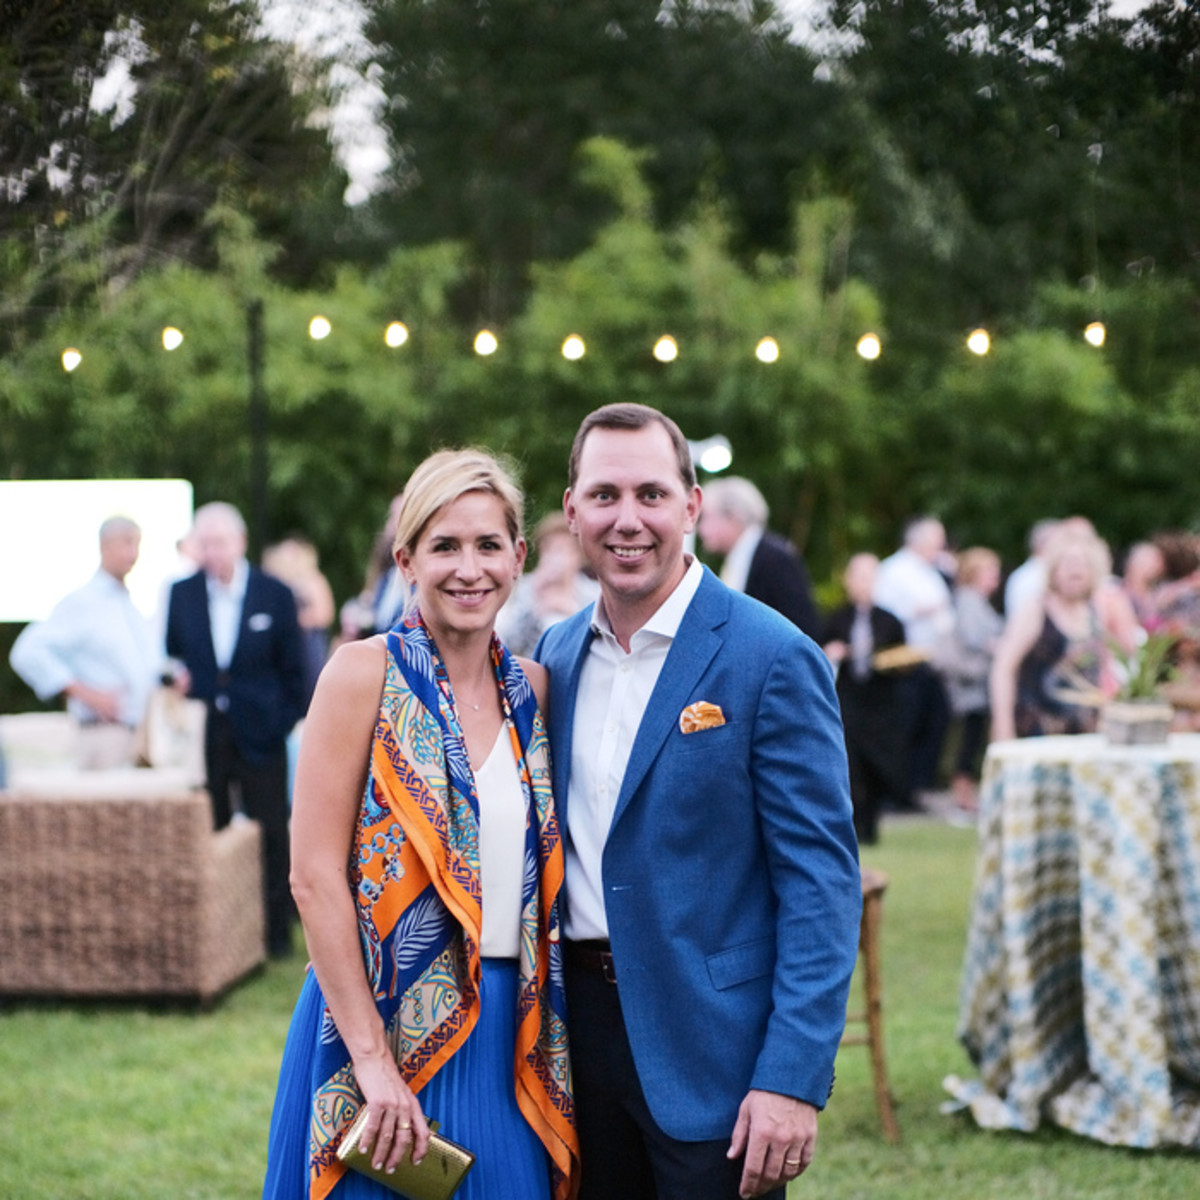 Houston Zoo Conservation Gala 2019 Courtney Solleveld, bas Solleveld